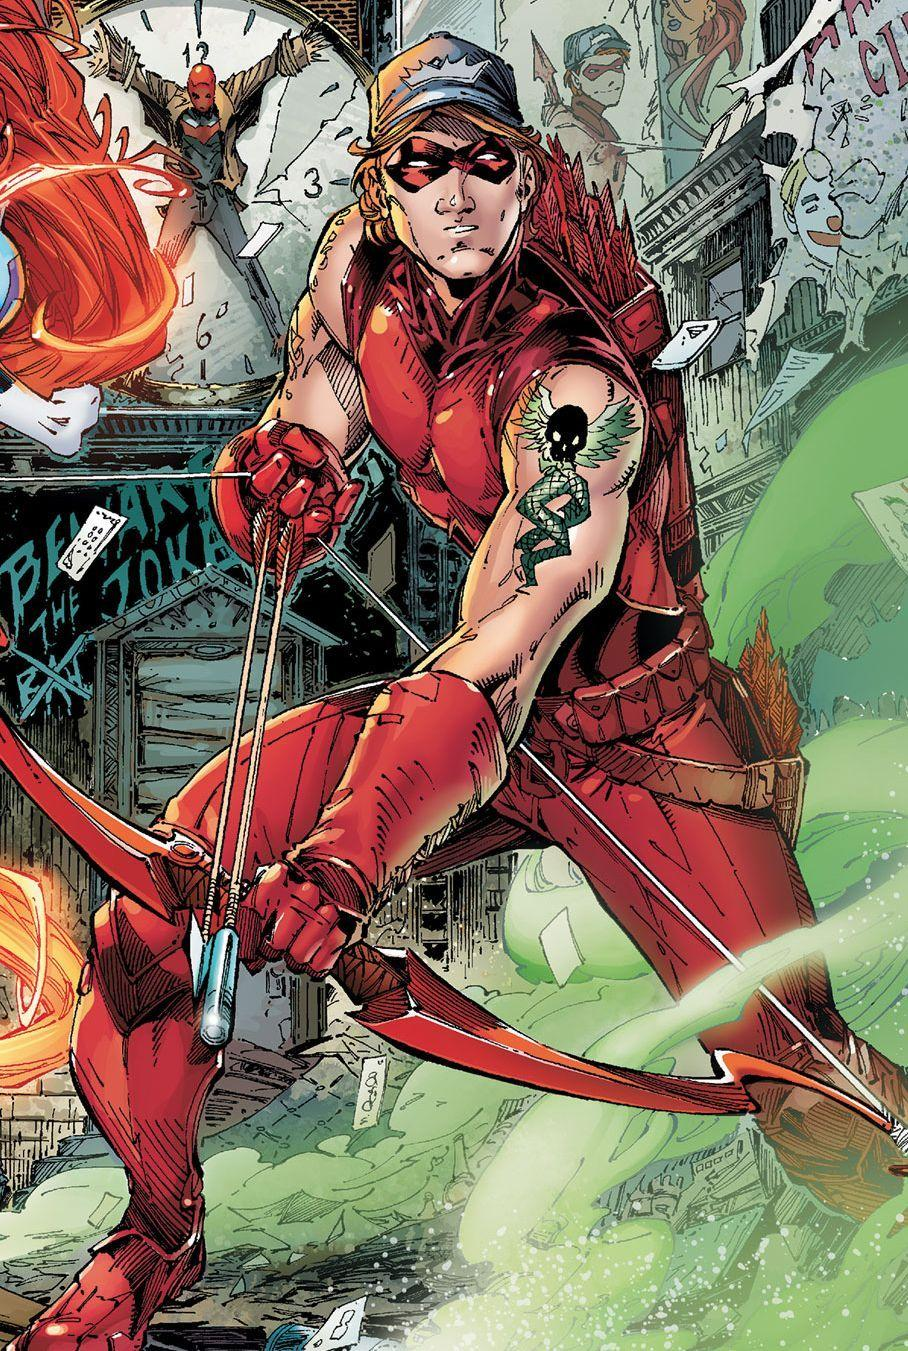 Roy Harper screenshots, images and pictures - Comic Vine | More ...